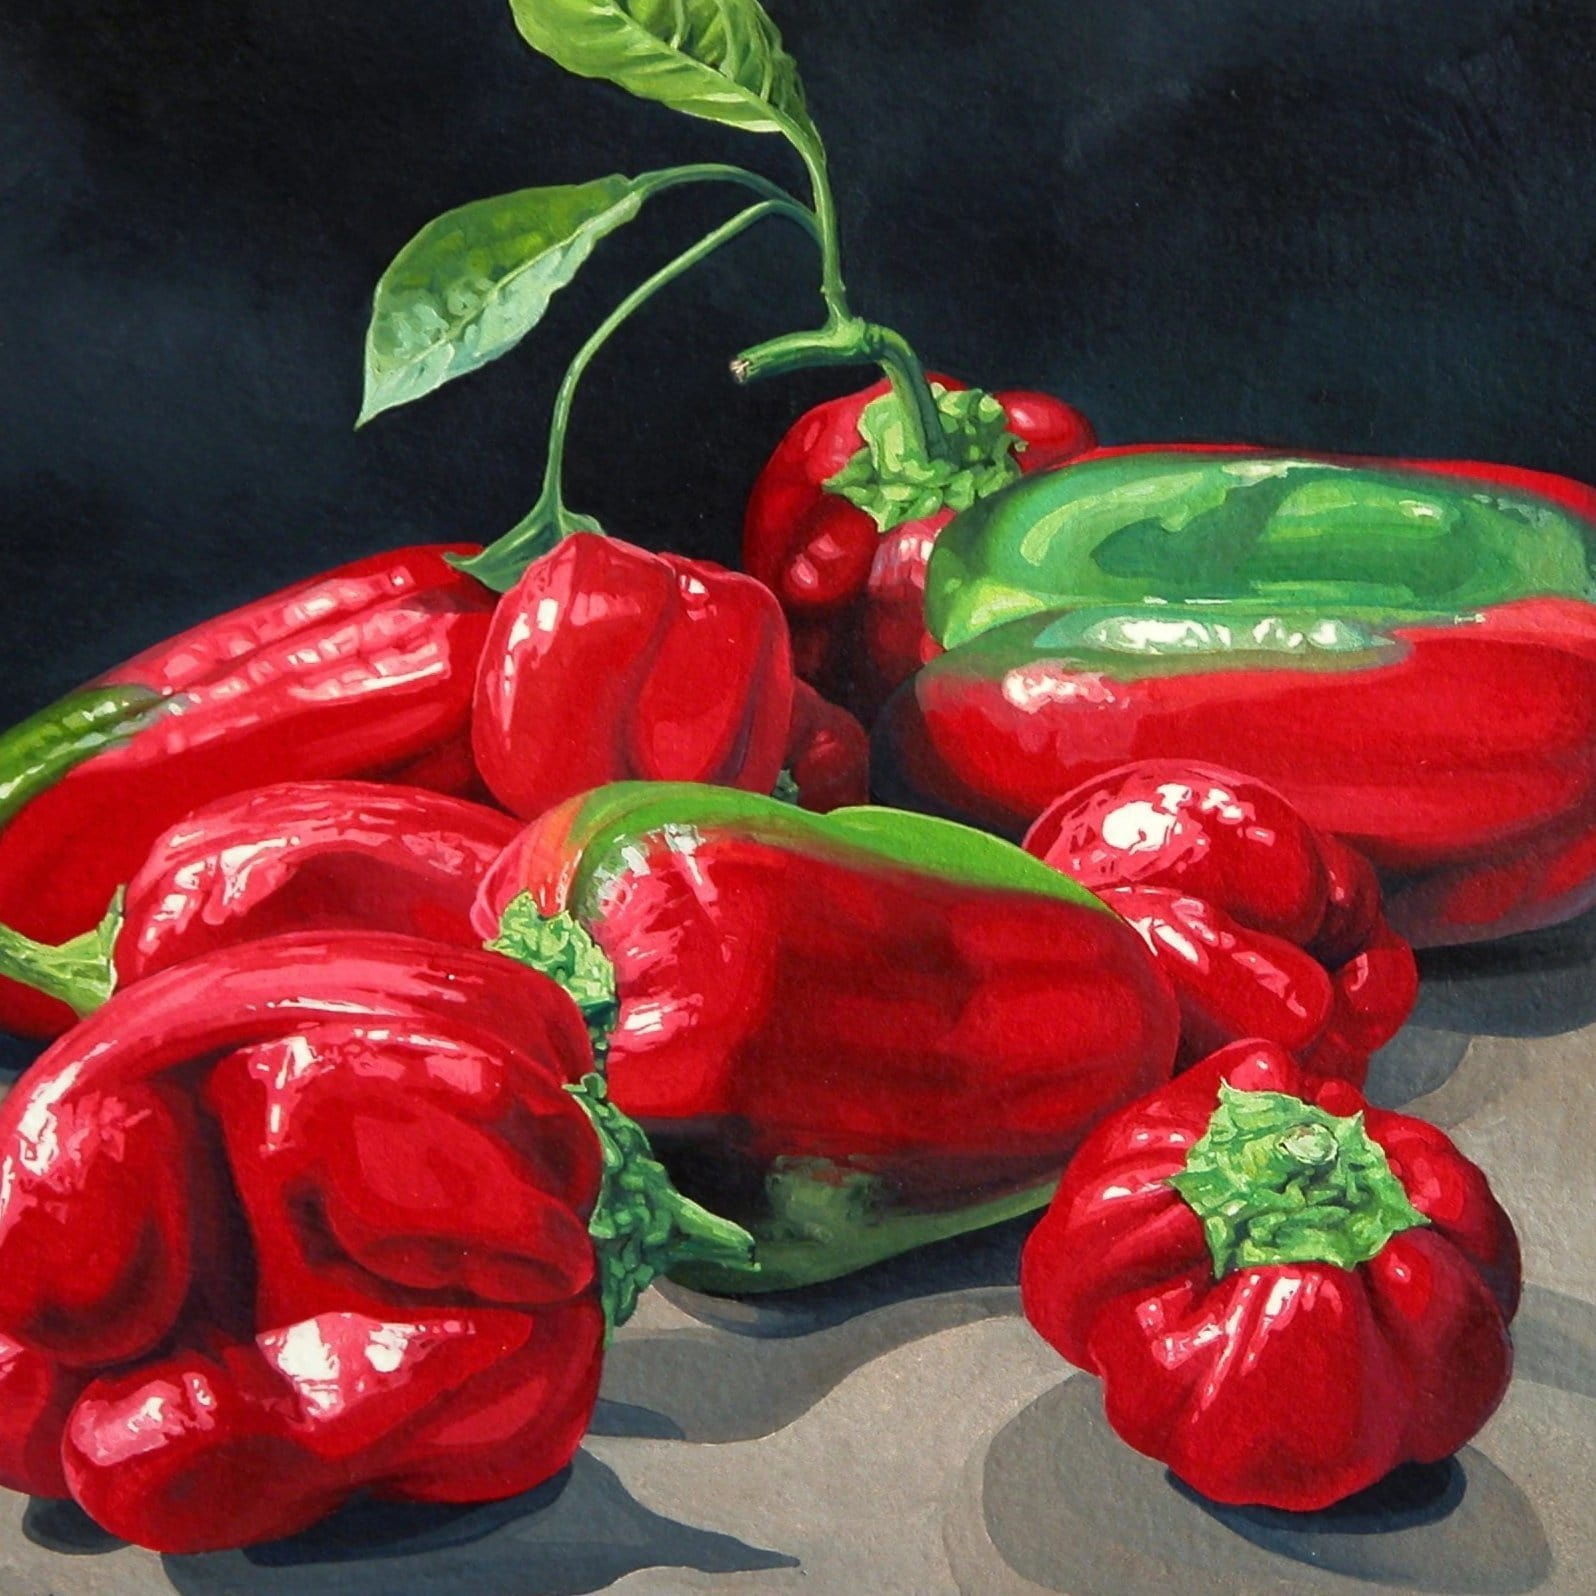 Still Life Greeting Card - Red Green Capsicums - JAIME PROSSER ART - JAIME PROSSER ART